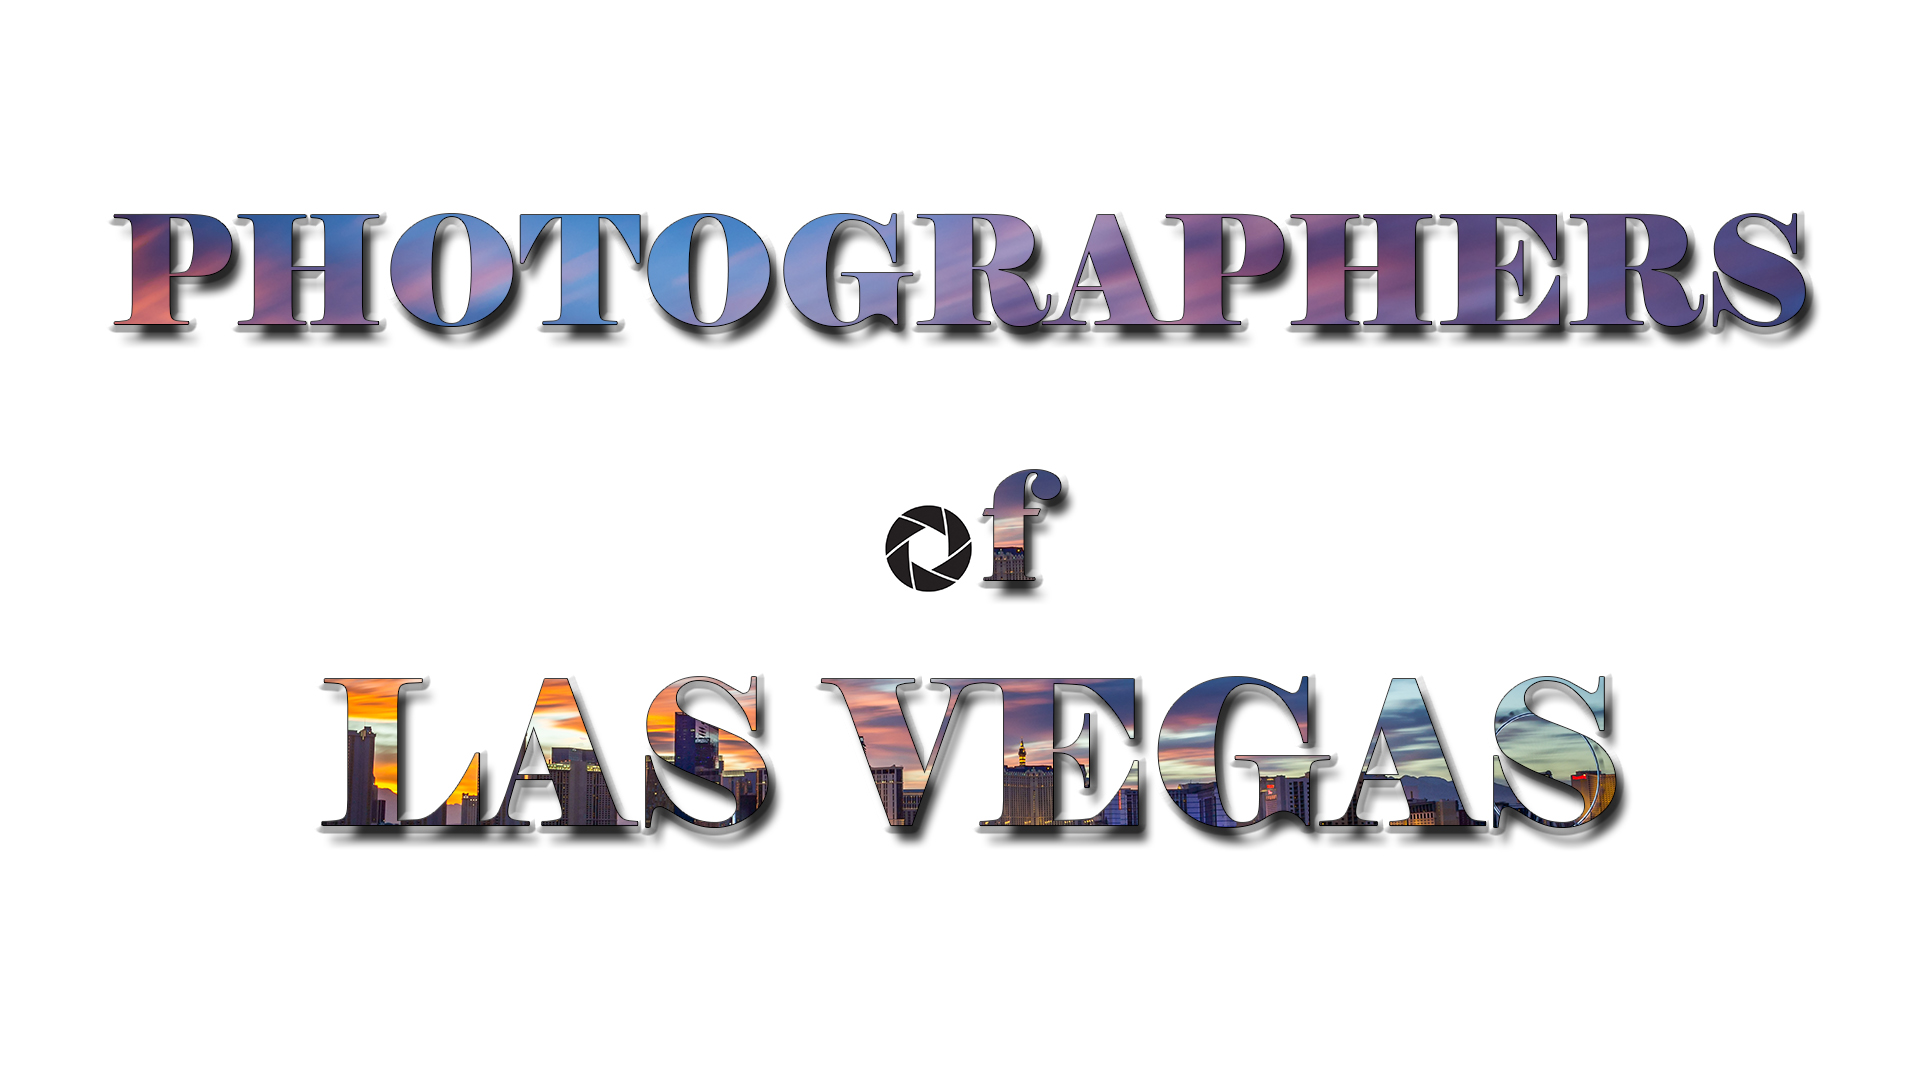 Photographers of Las Vegas About photographers of las vegas The quality and consistency you can trust. Customize your photography experience. Digital and Print Packages available - On Location Photography - Mobile Studio Services Available   1